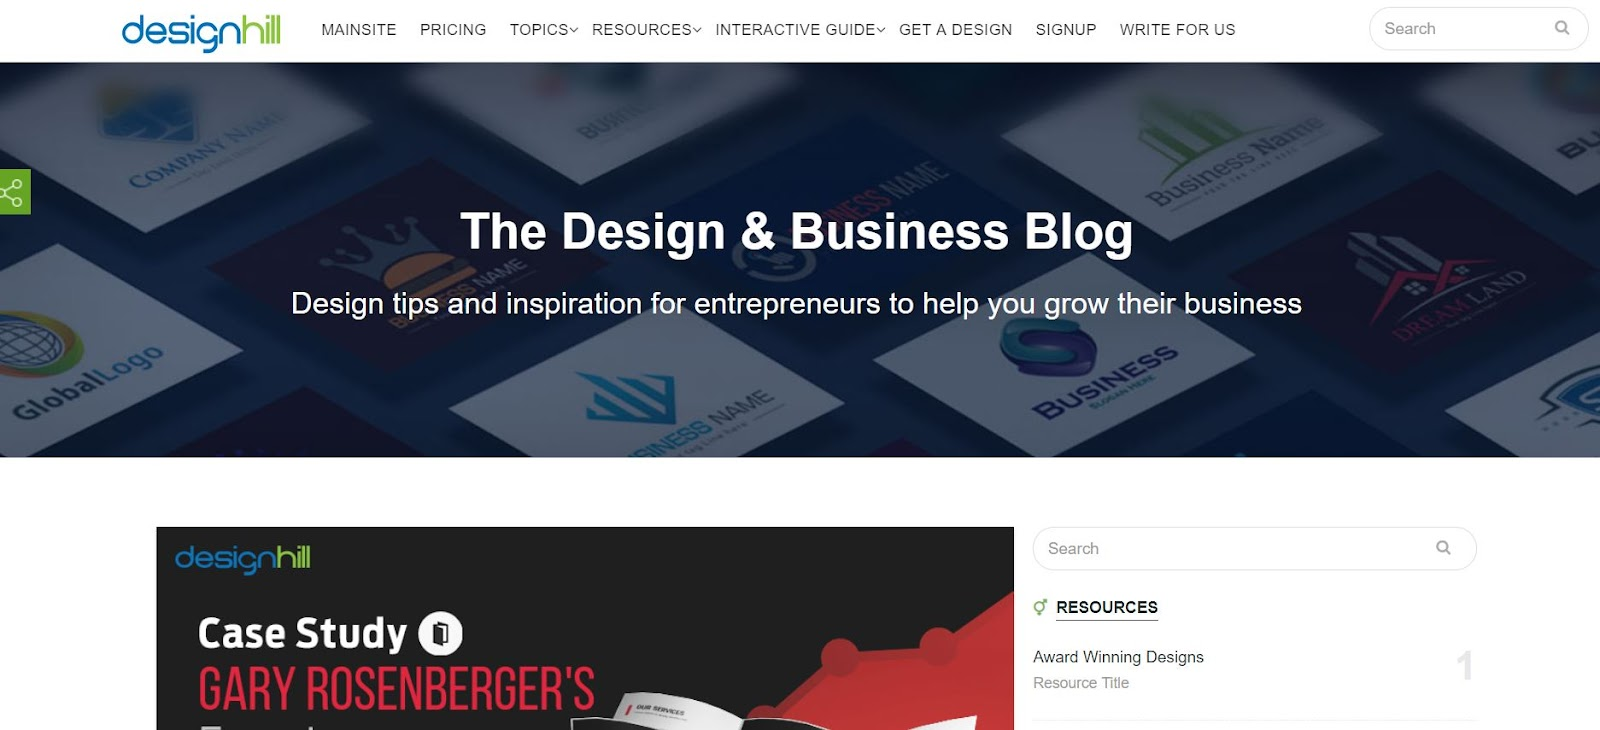 Designhill - Top Graphic Design Blogs